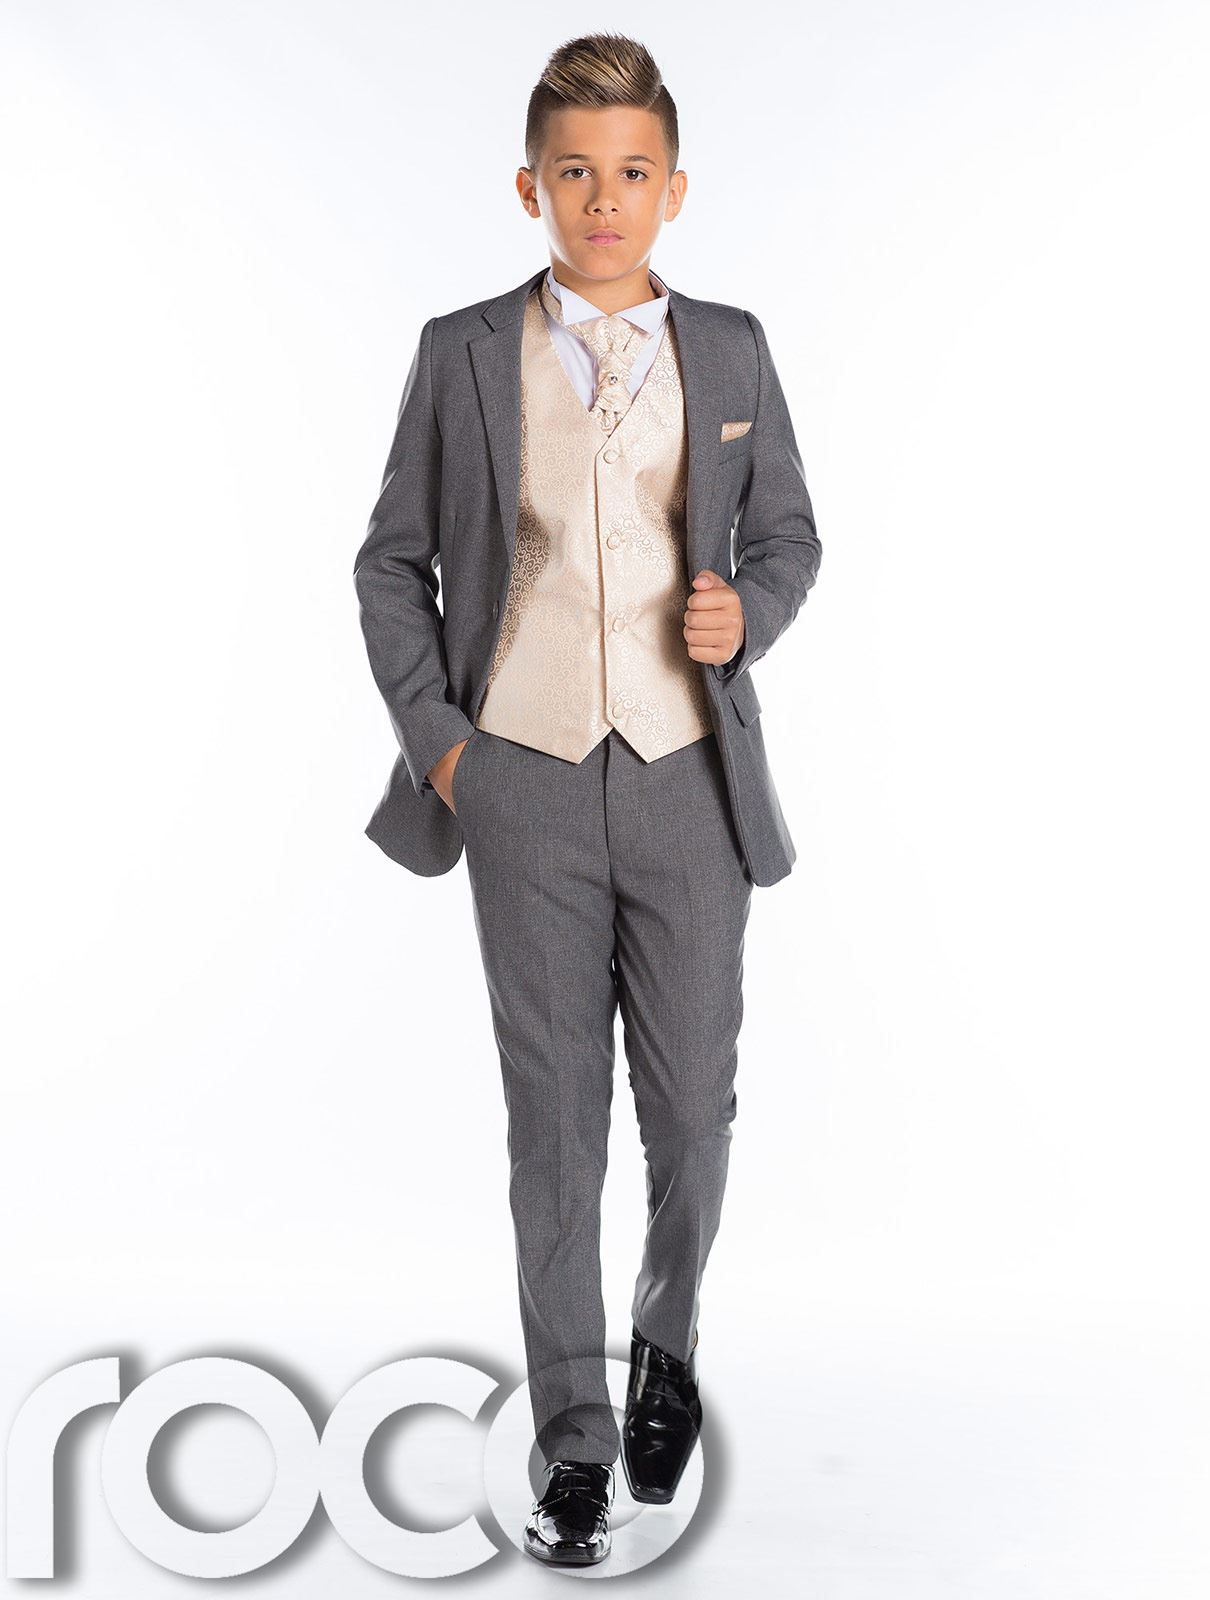 Boys Wedding Suit Page Boy Suit Boys Grey Suit Grey Slim Fit Suit